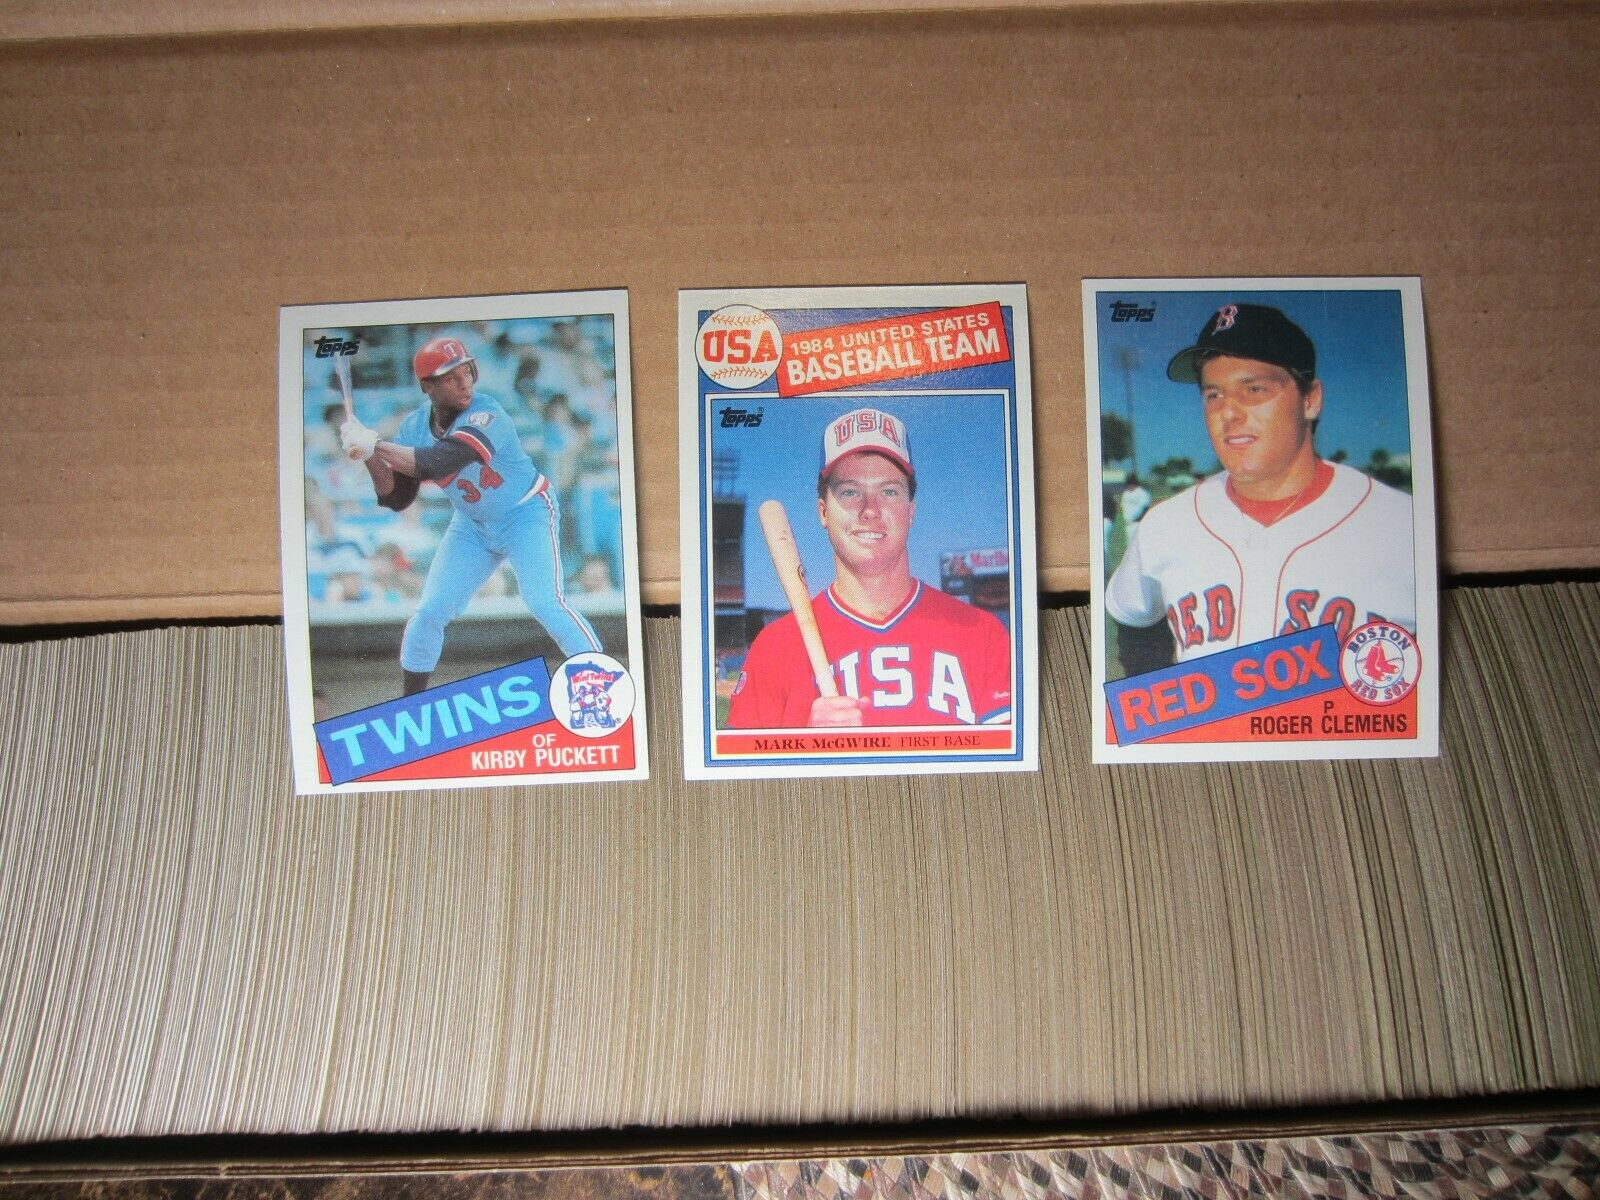 1985 Topps Baseball Complete Set Kirby Puckett rookies 1-792 with Mark McGwire Roger Clemens